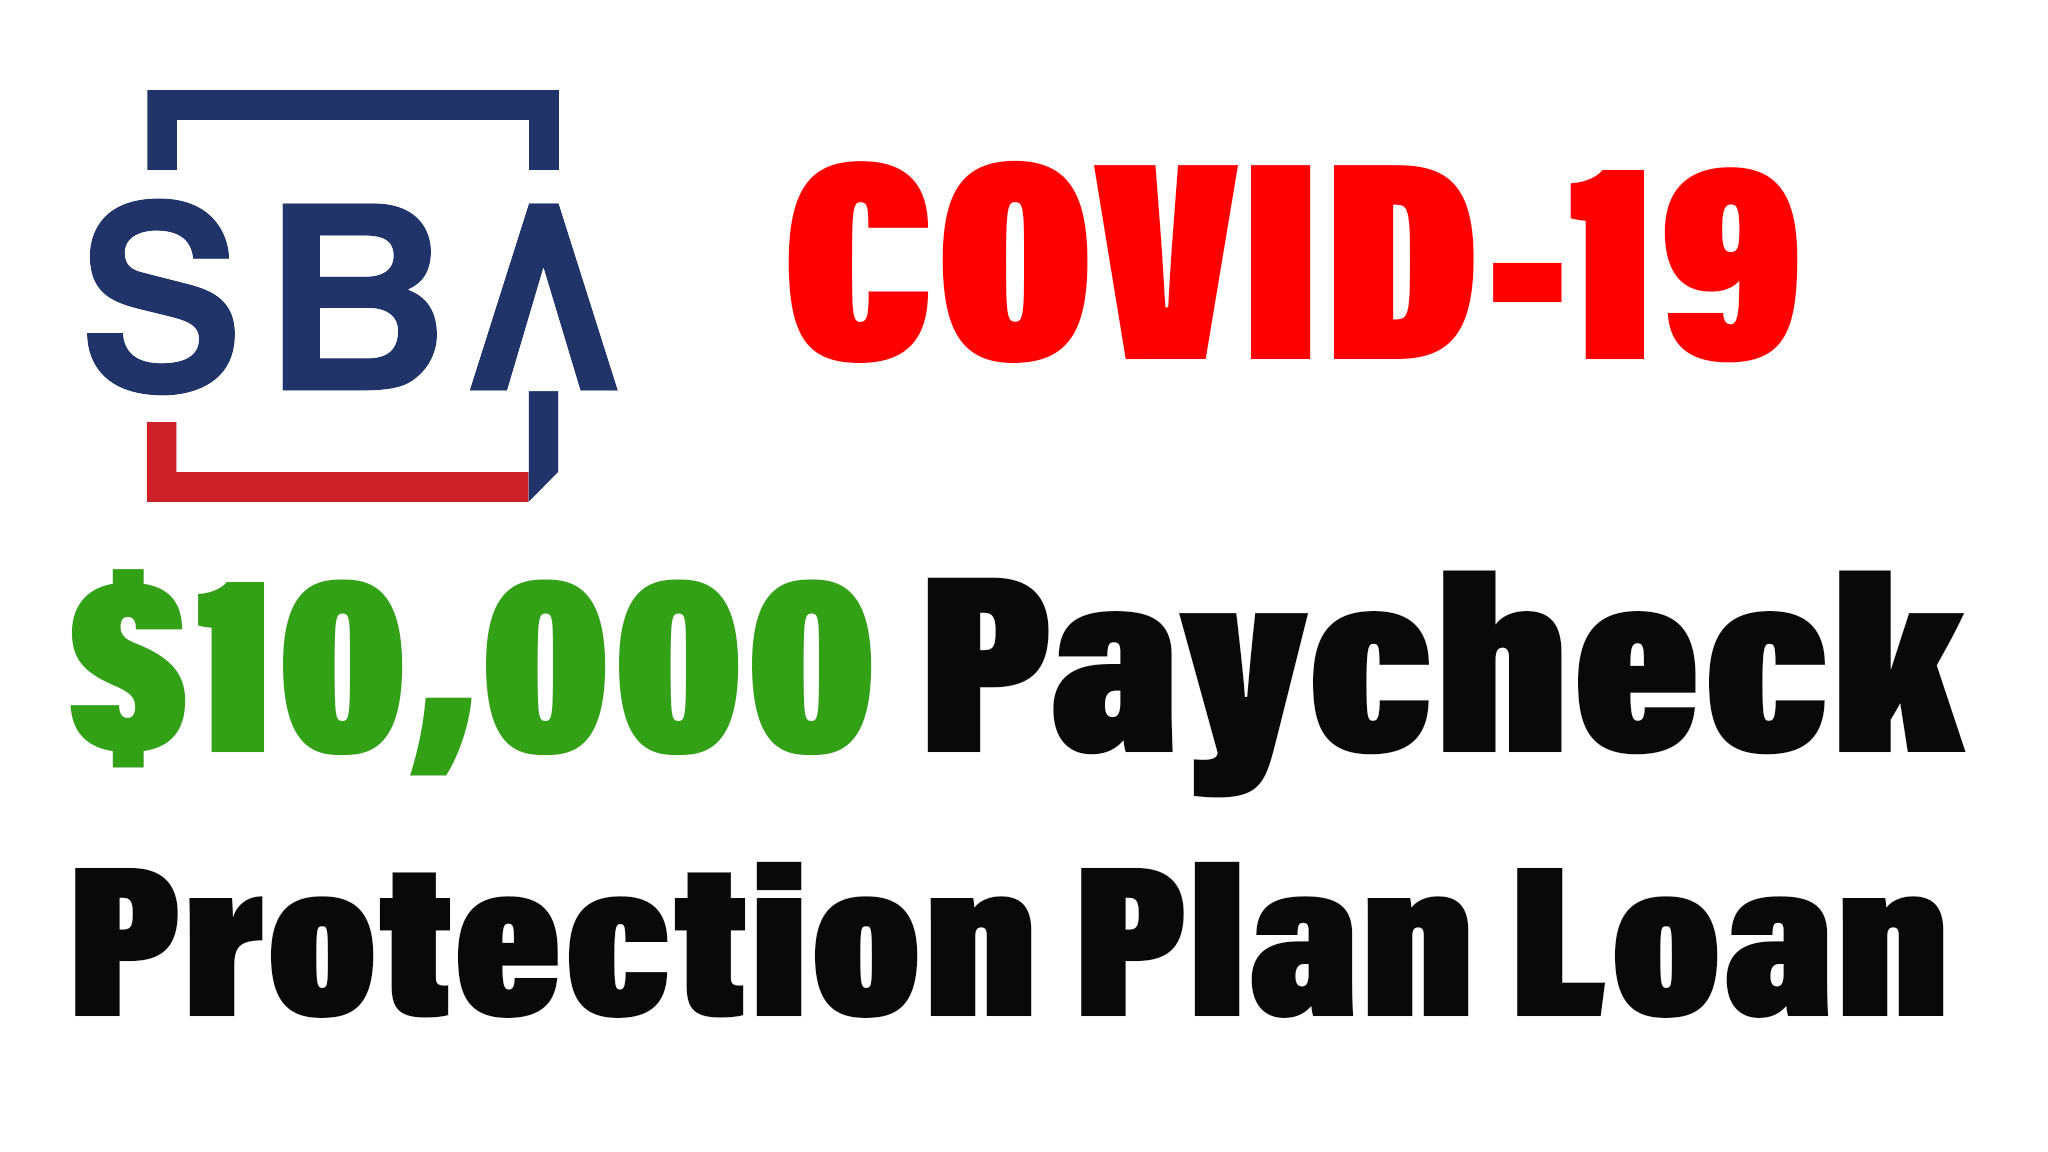 How To Apply For The $10,000 Paycheck Protection Plan Loan